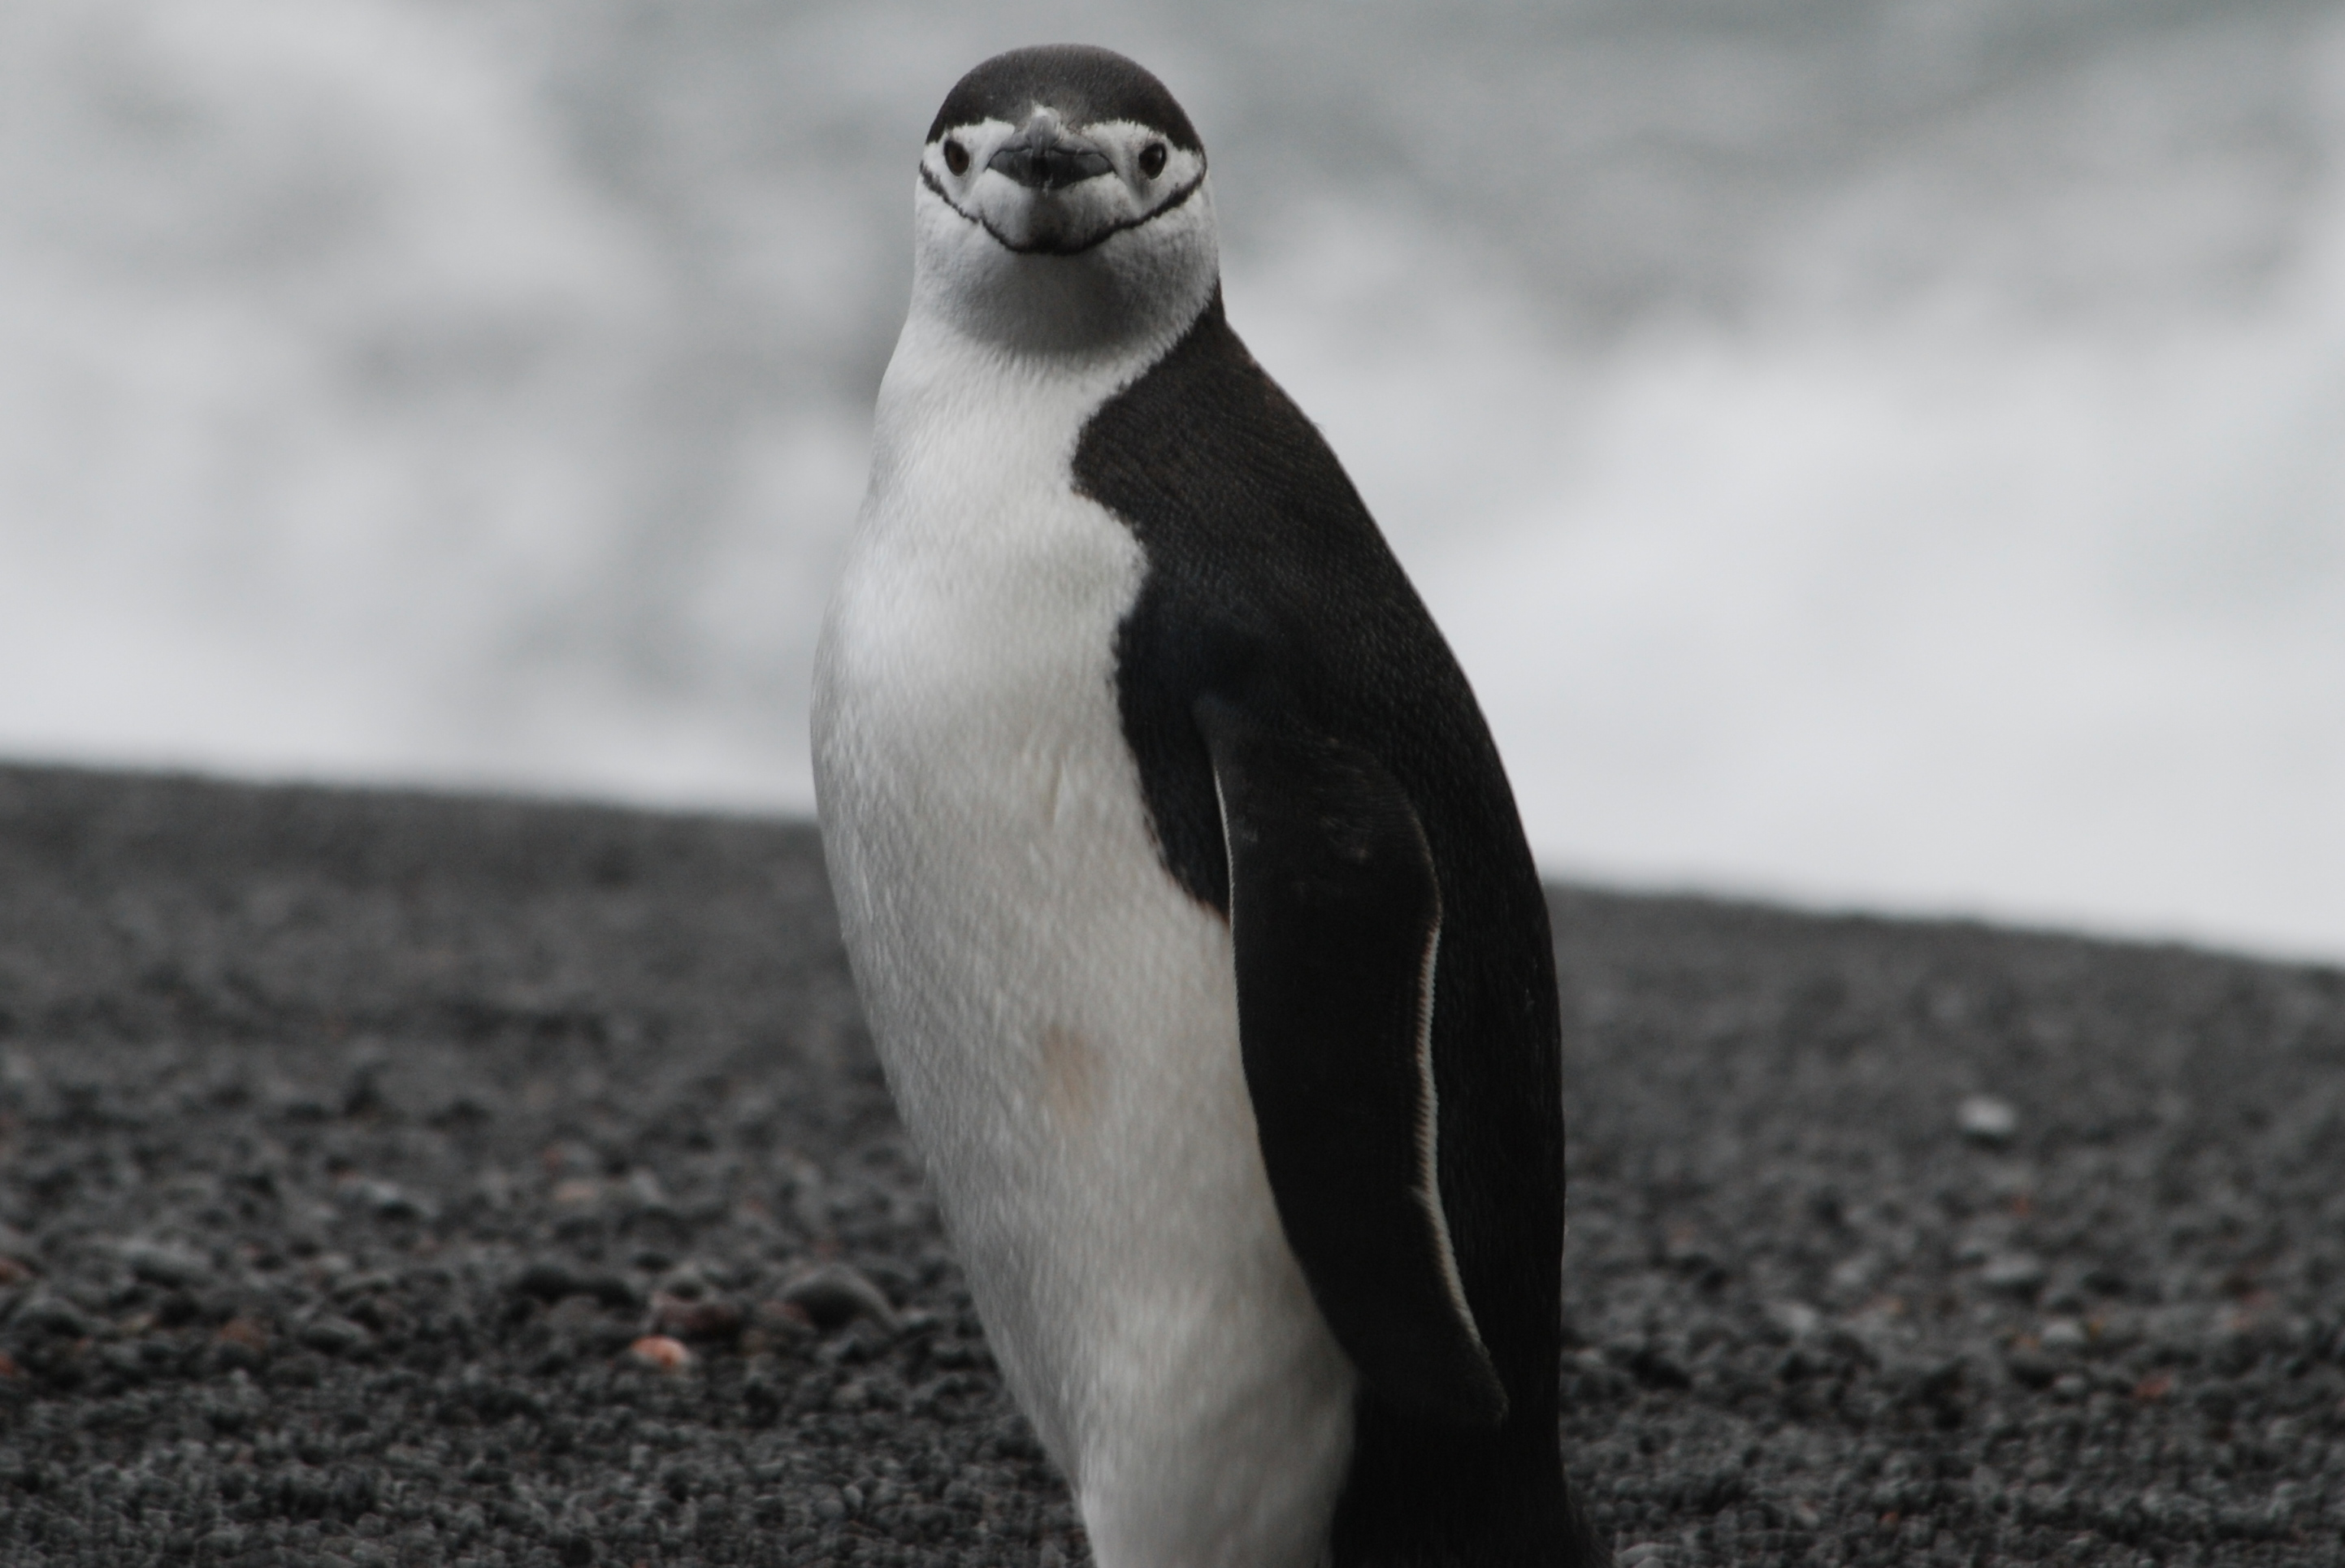 Chinstrap penguin pictures